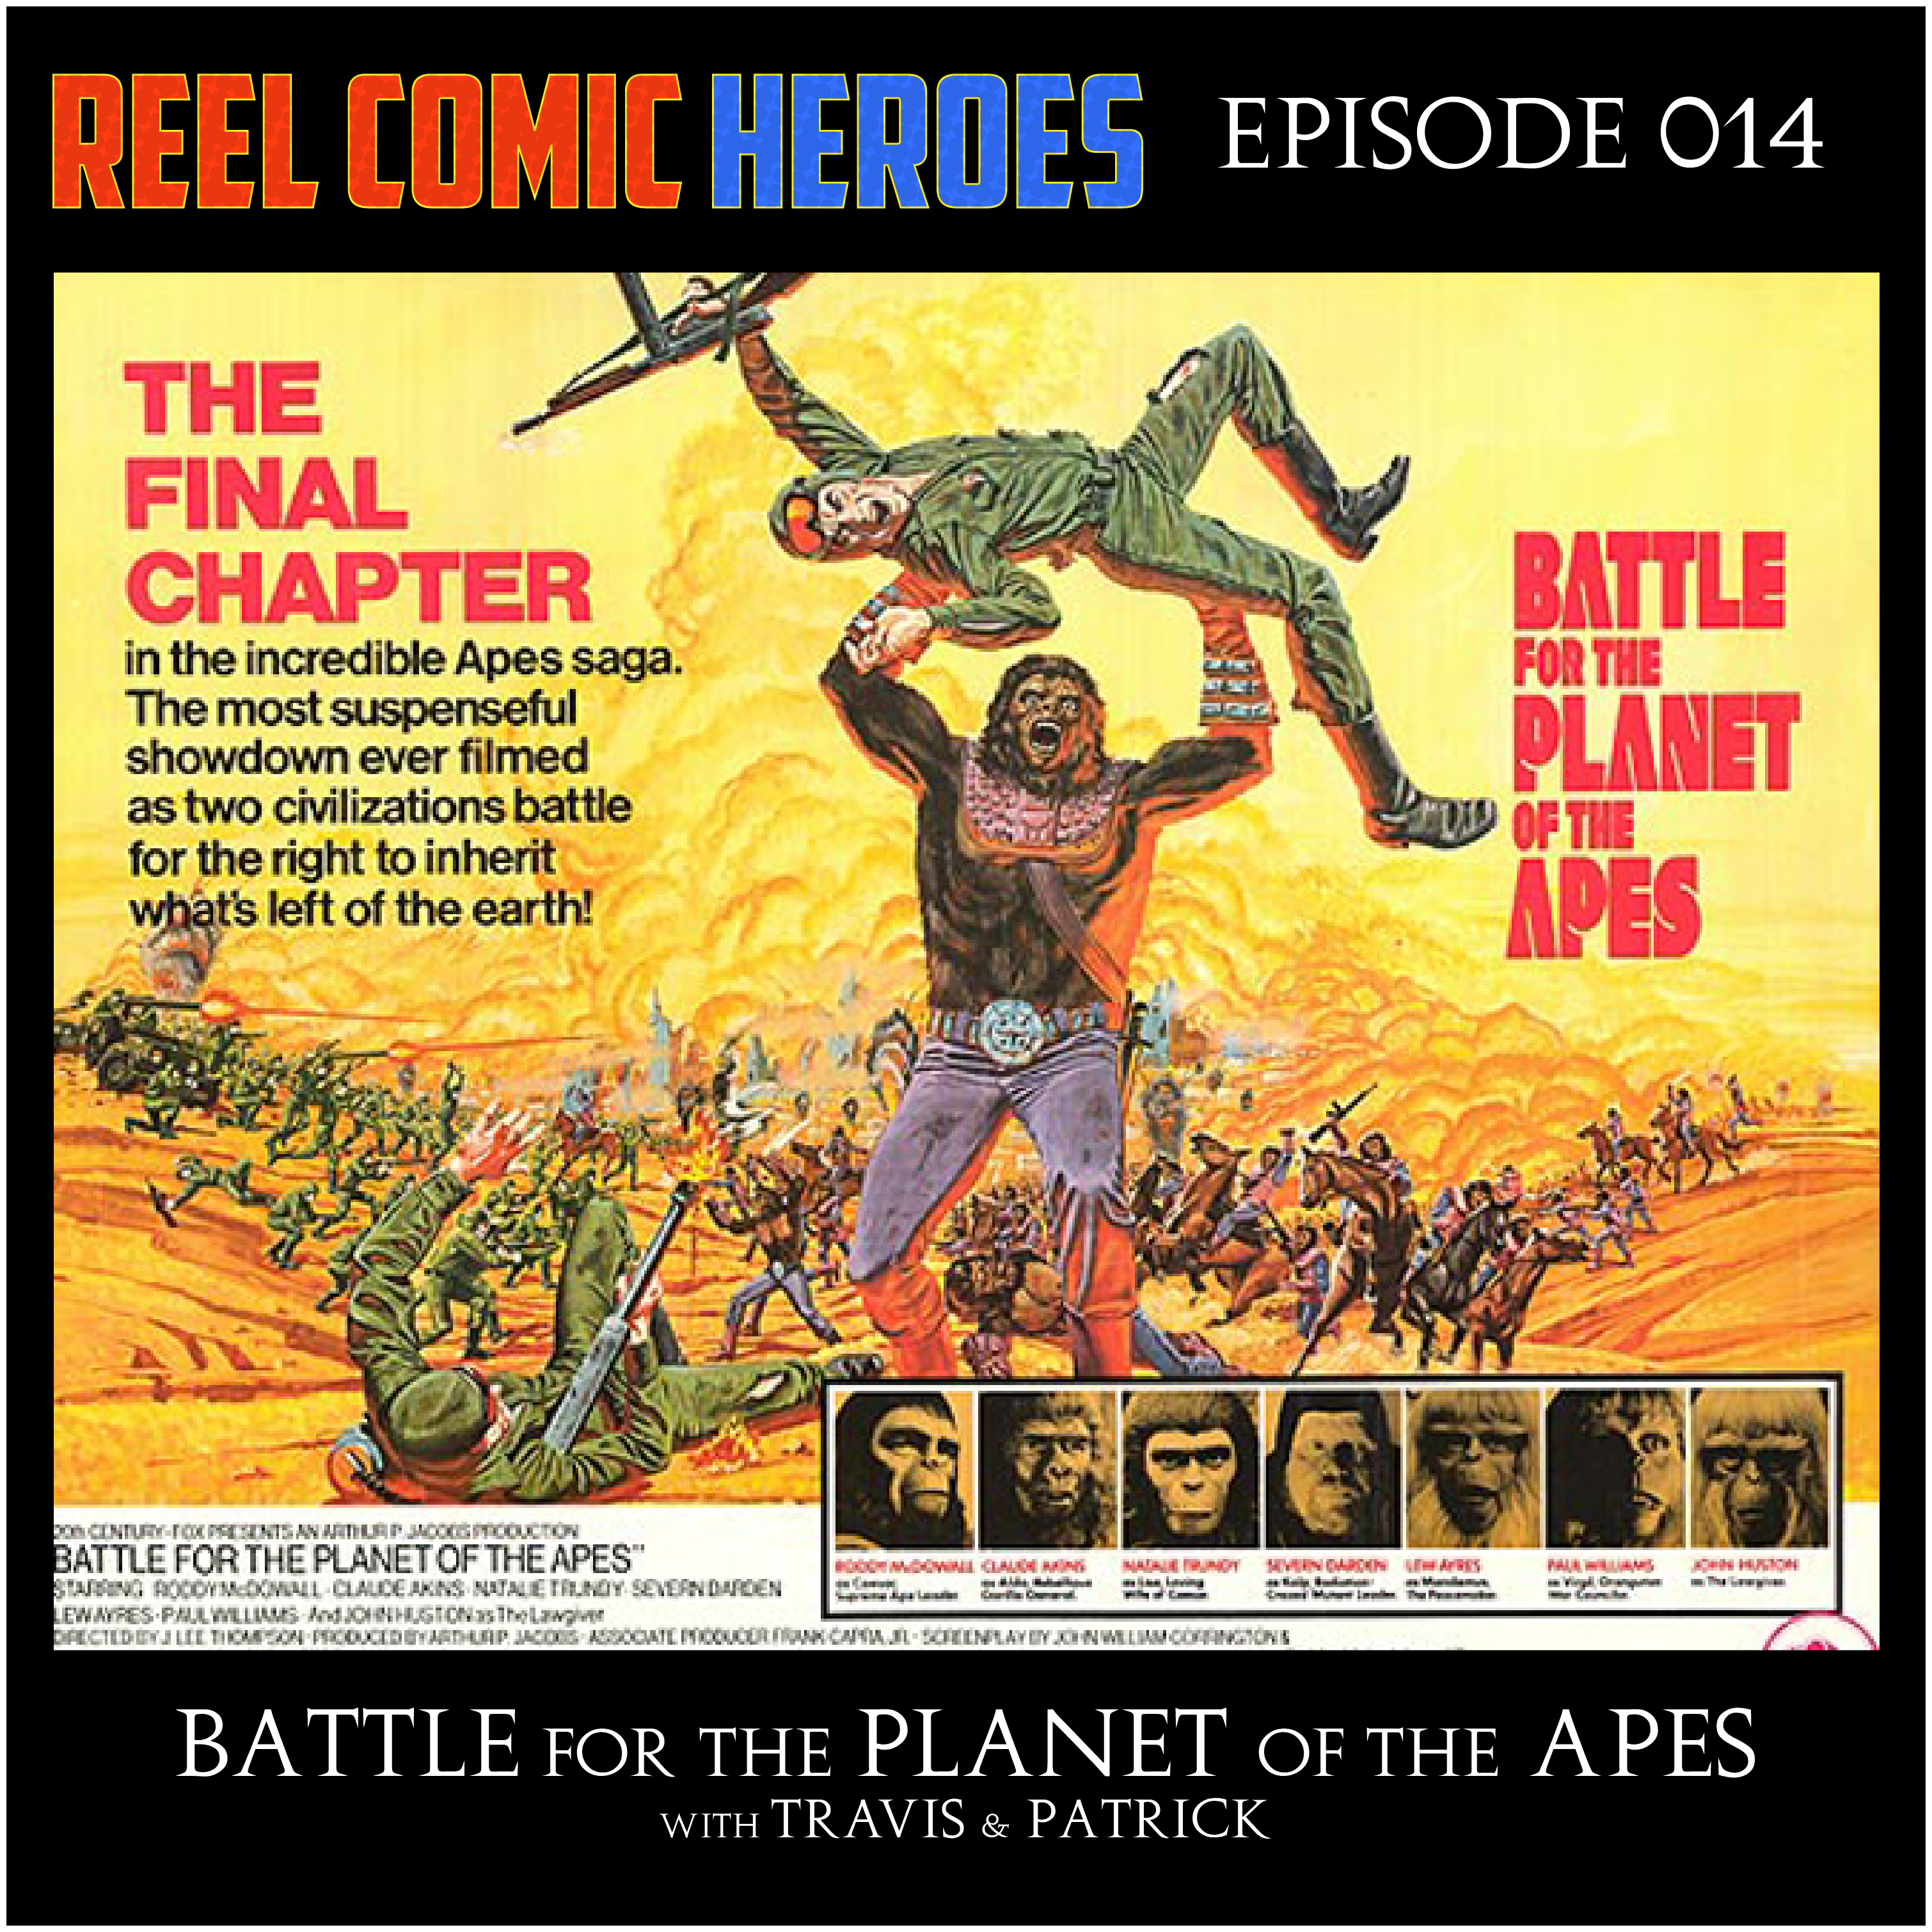 Artwork for Reel Comic Heroes 014 - Battle for the Planet of the Apes